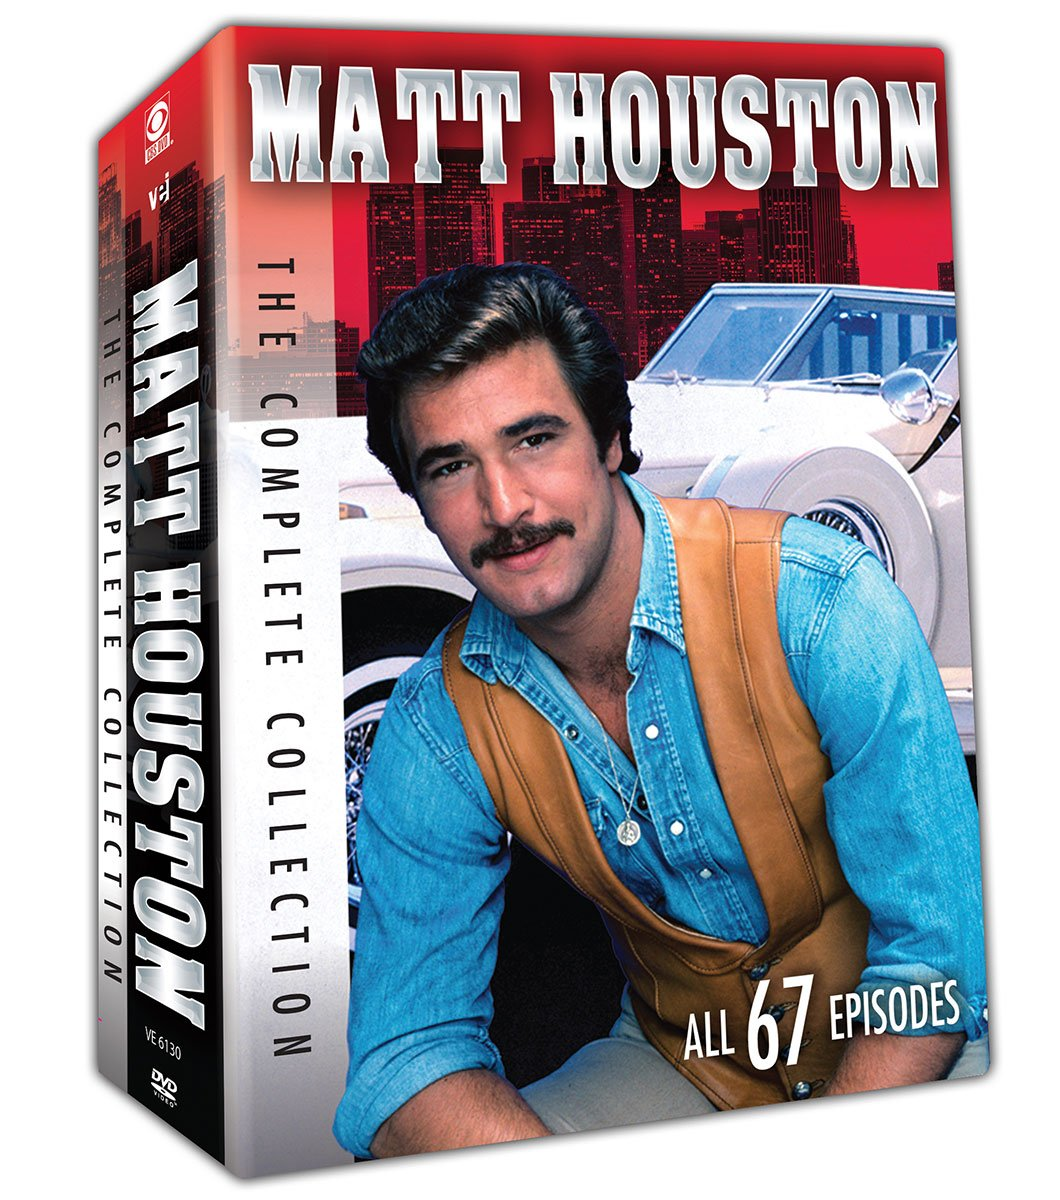 Matt Houston//The Complete Collection by Visual Entertainment Inc.